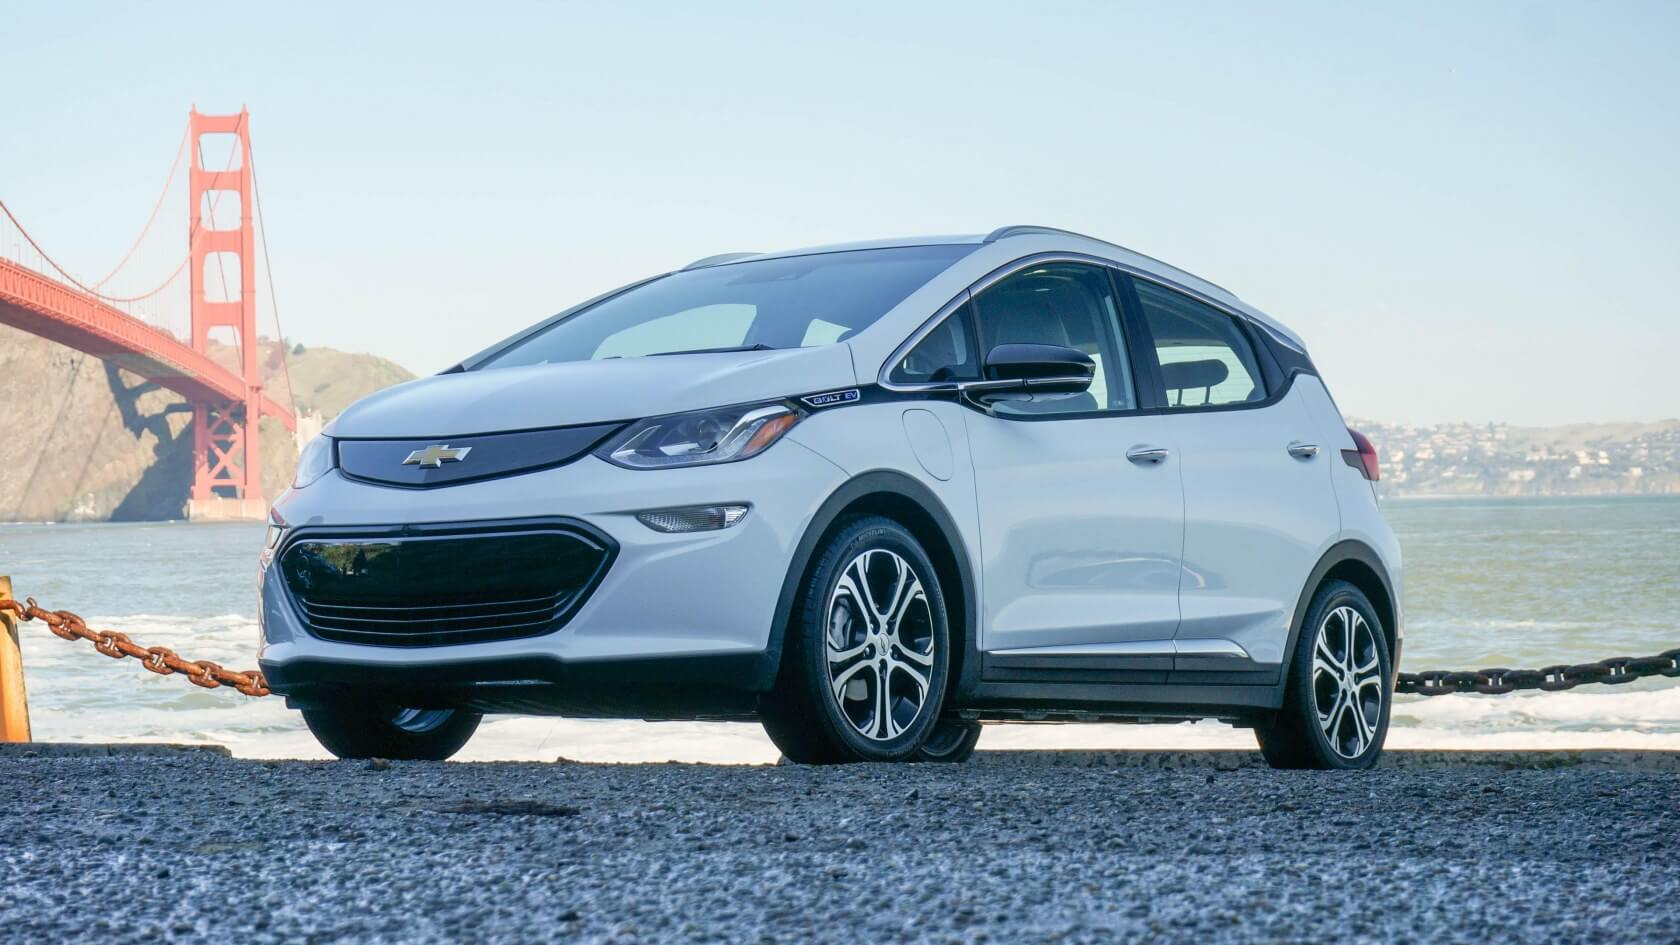 General Motors will soon lose its $7,500 electric vehicle tax incentive